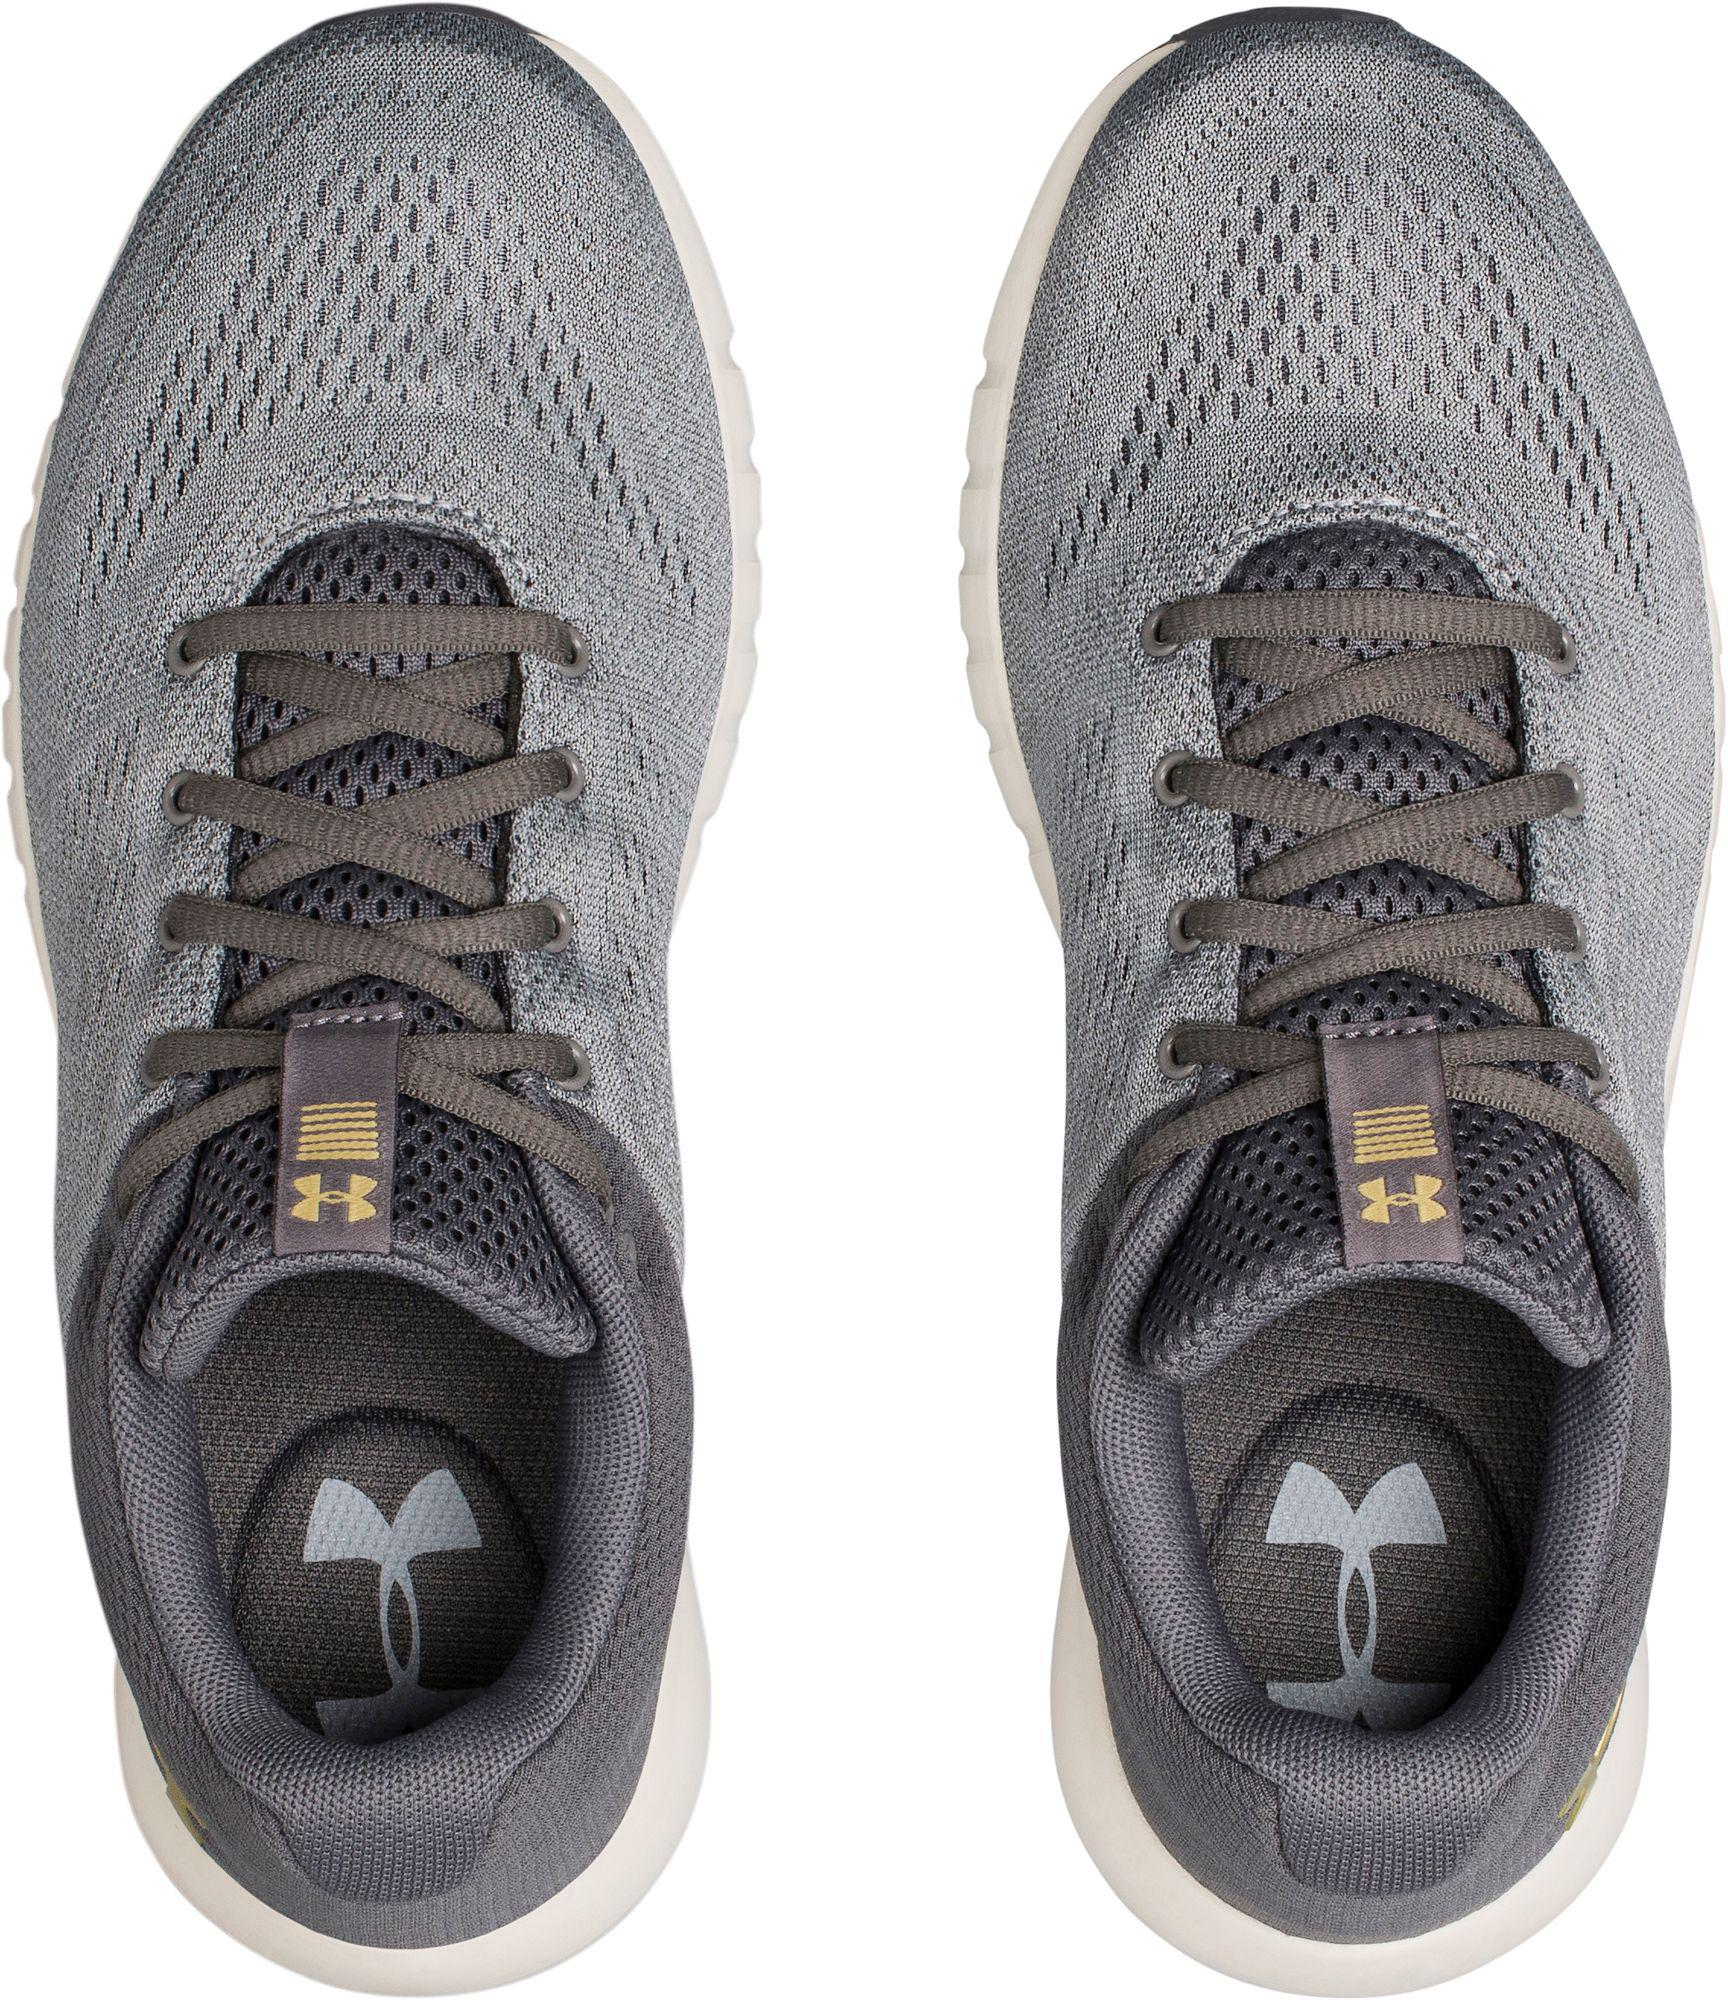 596a02090a2 Lyst - Under Armour Micro G Pursuit Running Shoes in Gray